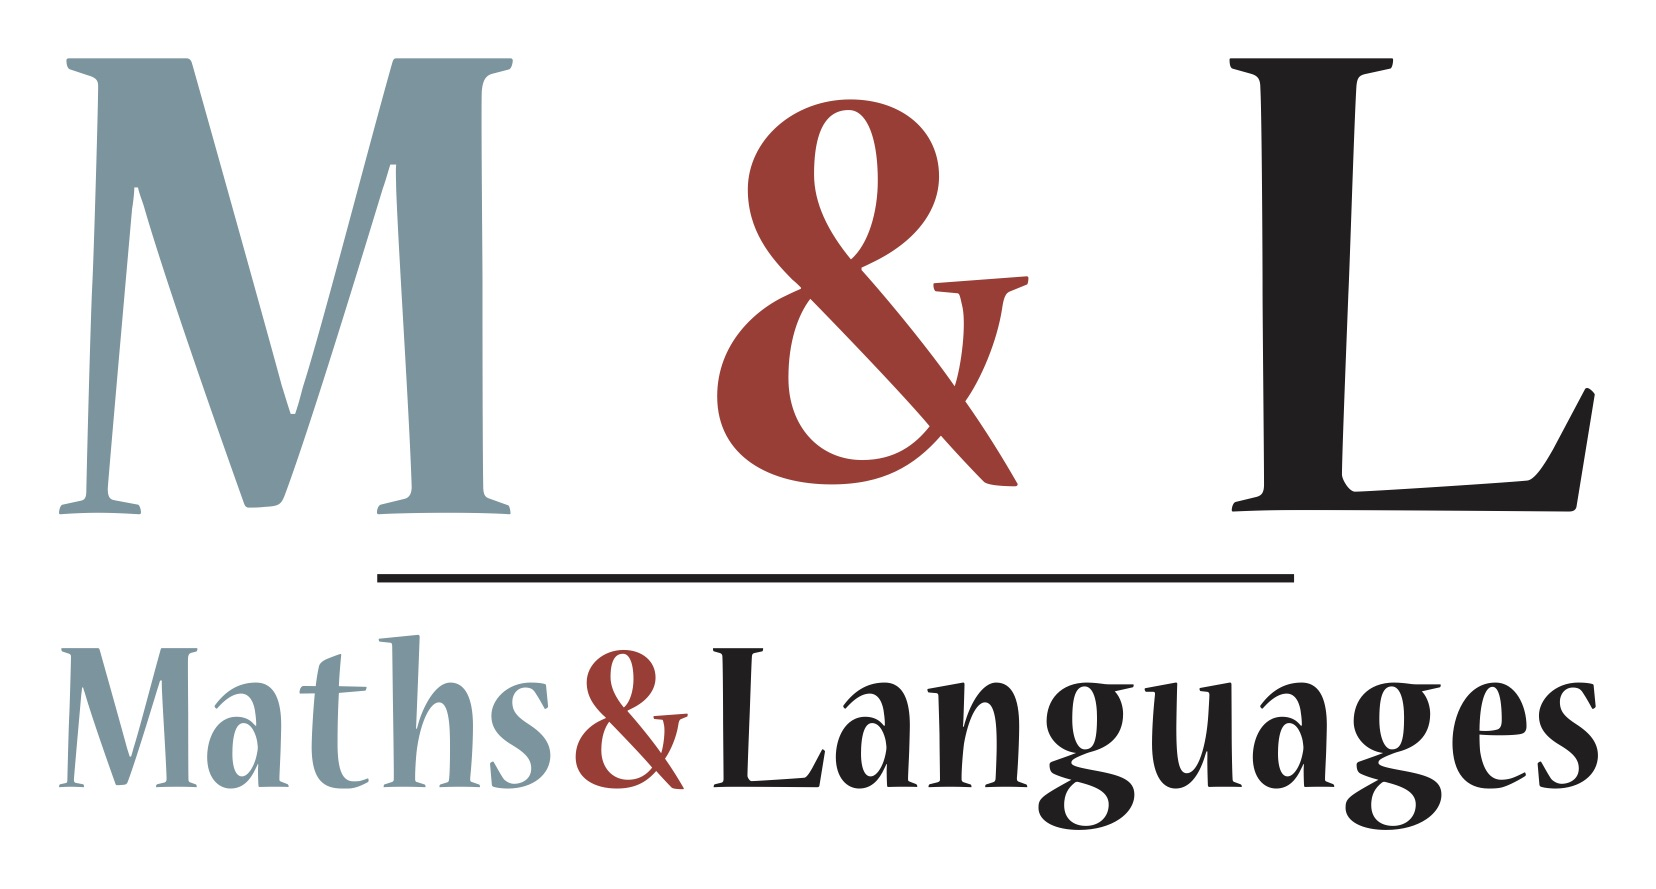 M&L Maths&Languages